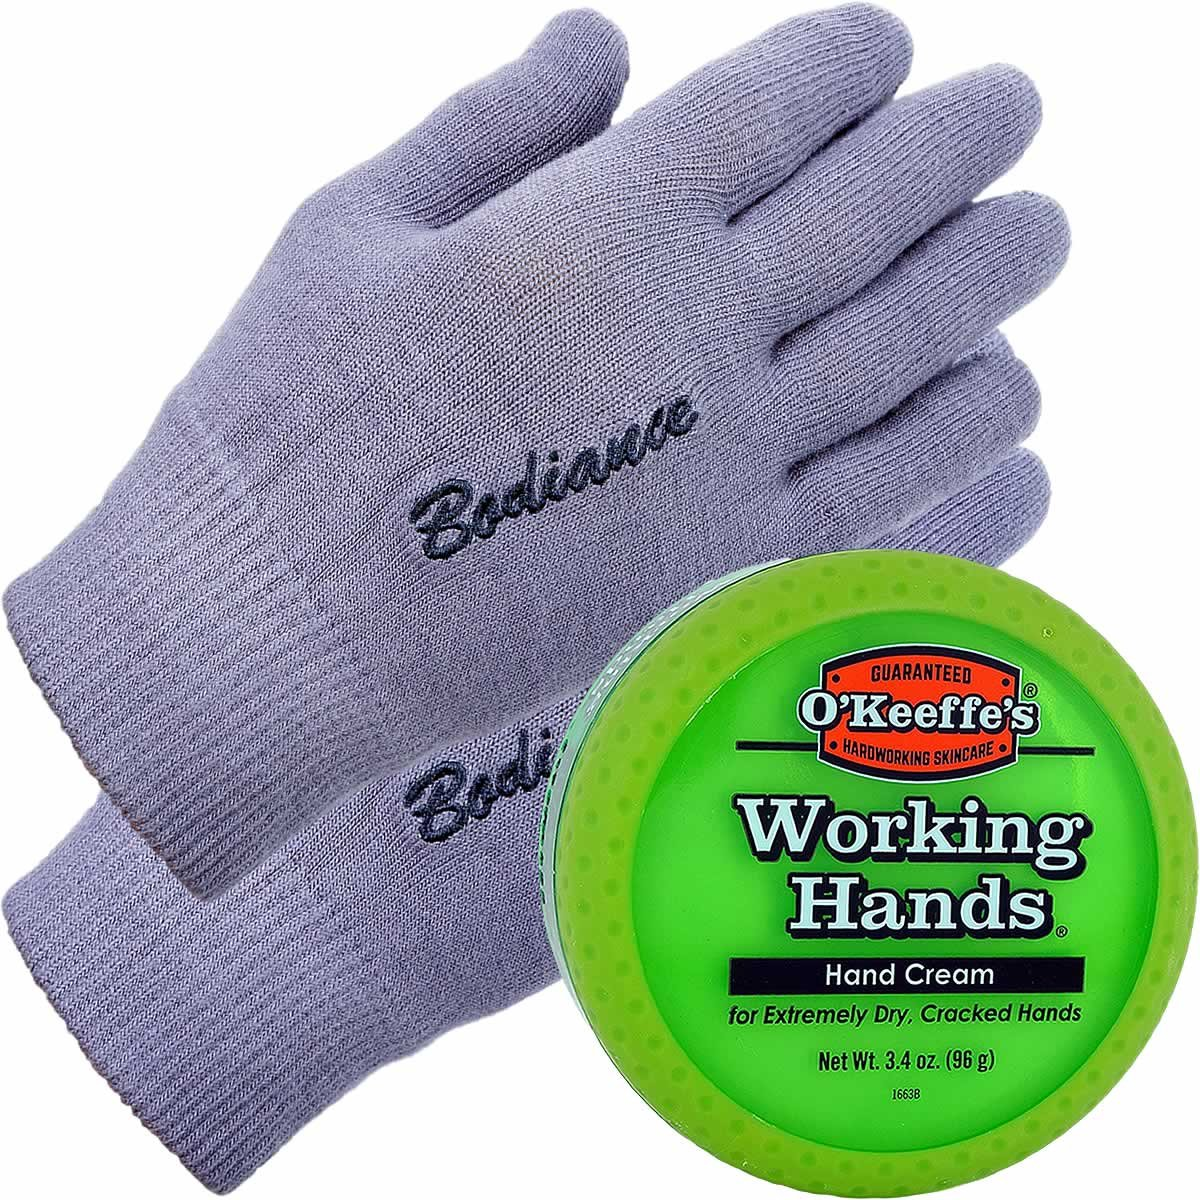 Hand Cream for Dry Cracked Hands and Hand Repair Gloves Bundle: O'Keeffe's Working Hands Cream (Unscented, Non-Greasy 3.2 oz.), Gel Moisturizing Gloves Men or Women (1 pair, Gray, Unscented) by Bodiance